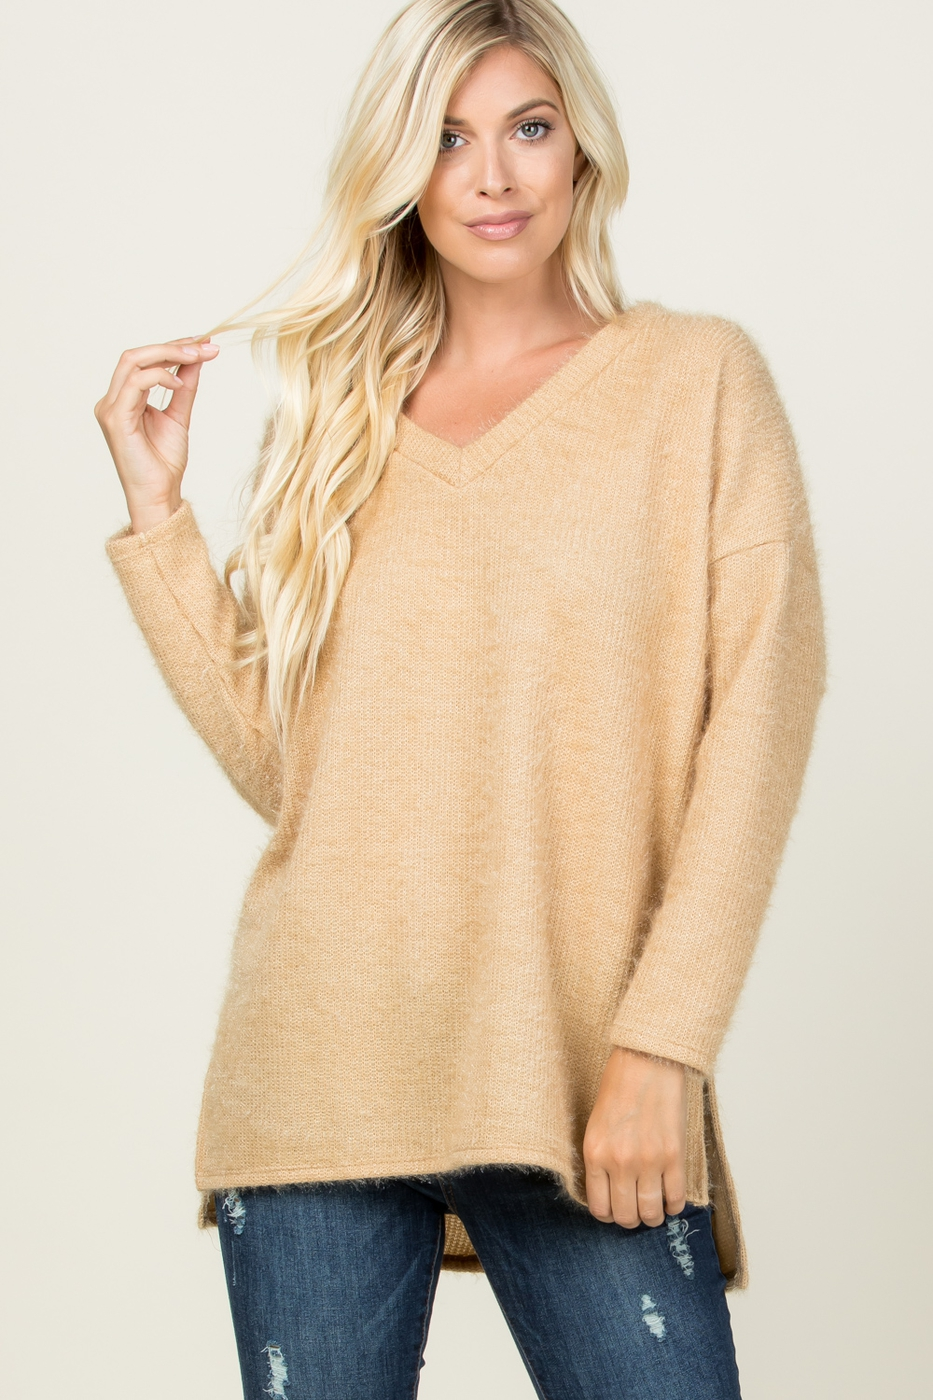 SOLID V NECK LONG SLEEVE SWEATER TOP - orangeshine.com